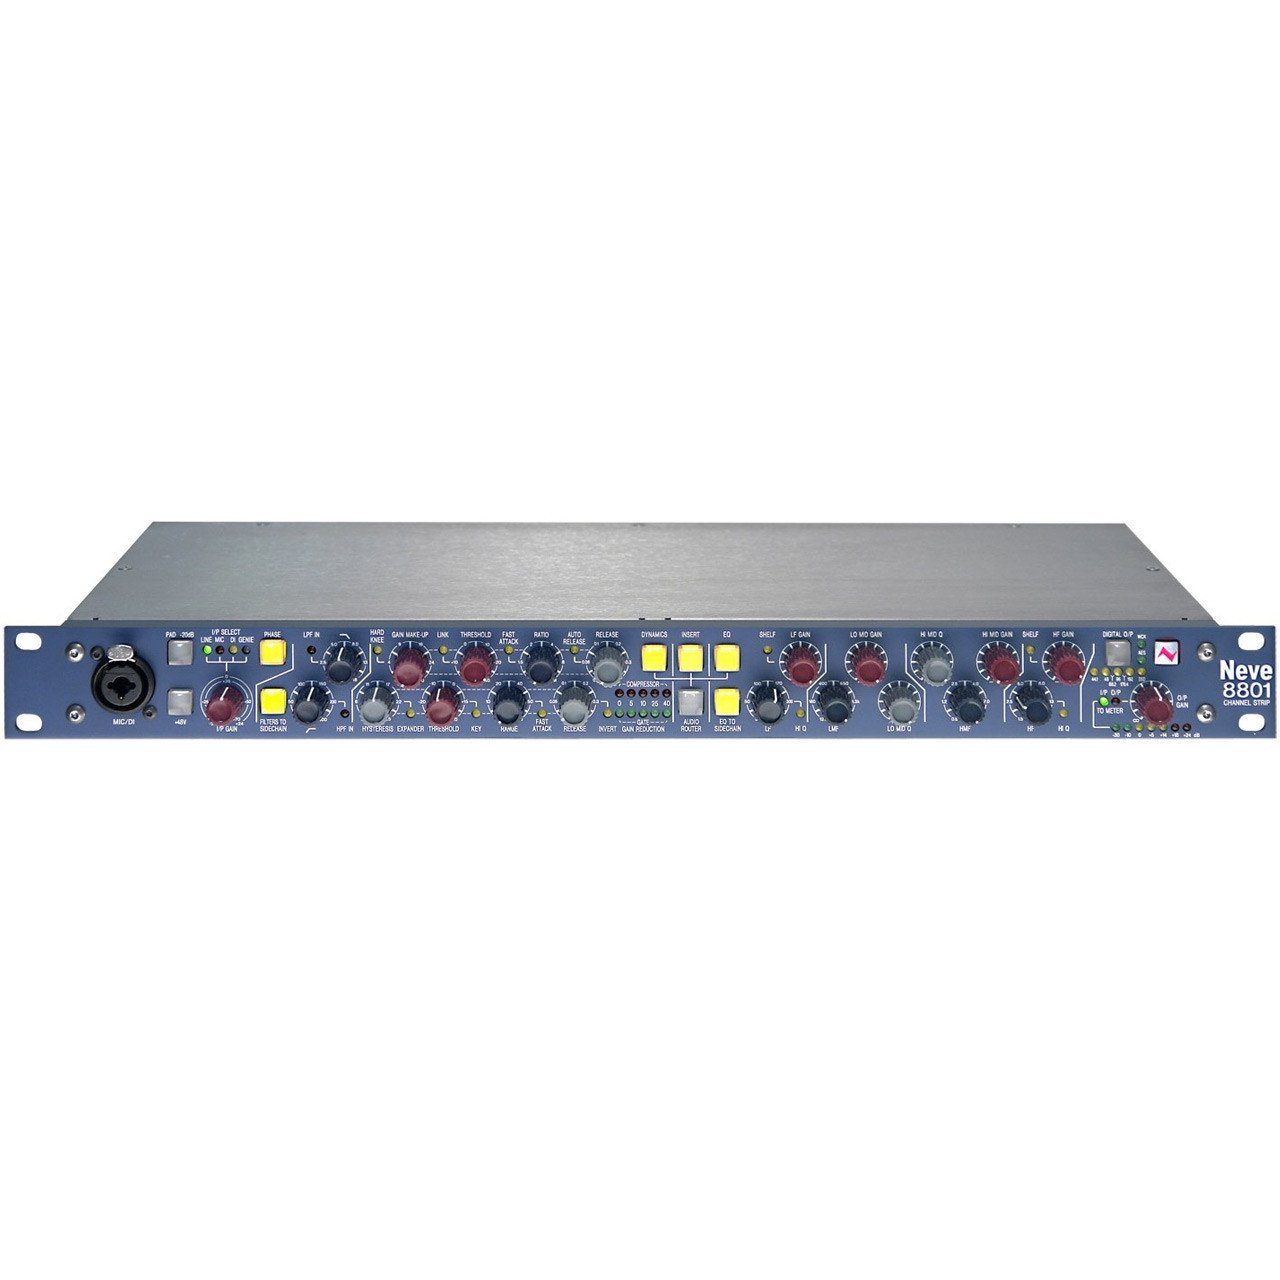 Preamps/Channel Strips - Neve AMS 8801 Channel Strip – Microphone Preamplifier / Equaliser / Dynamics